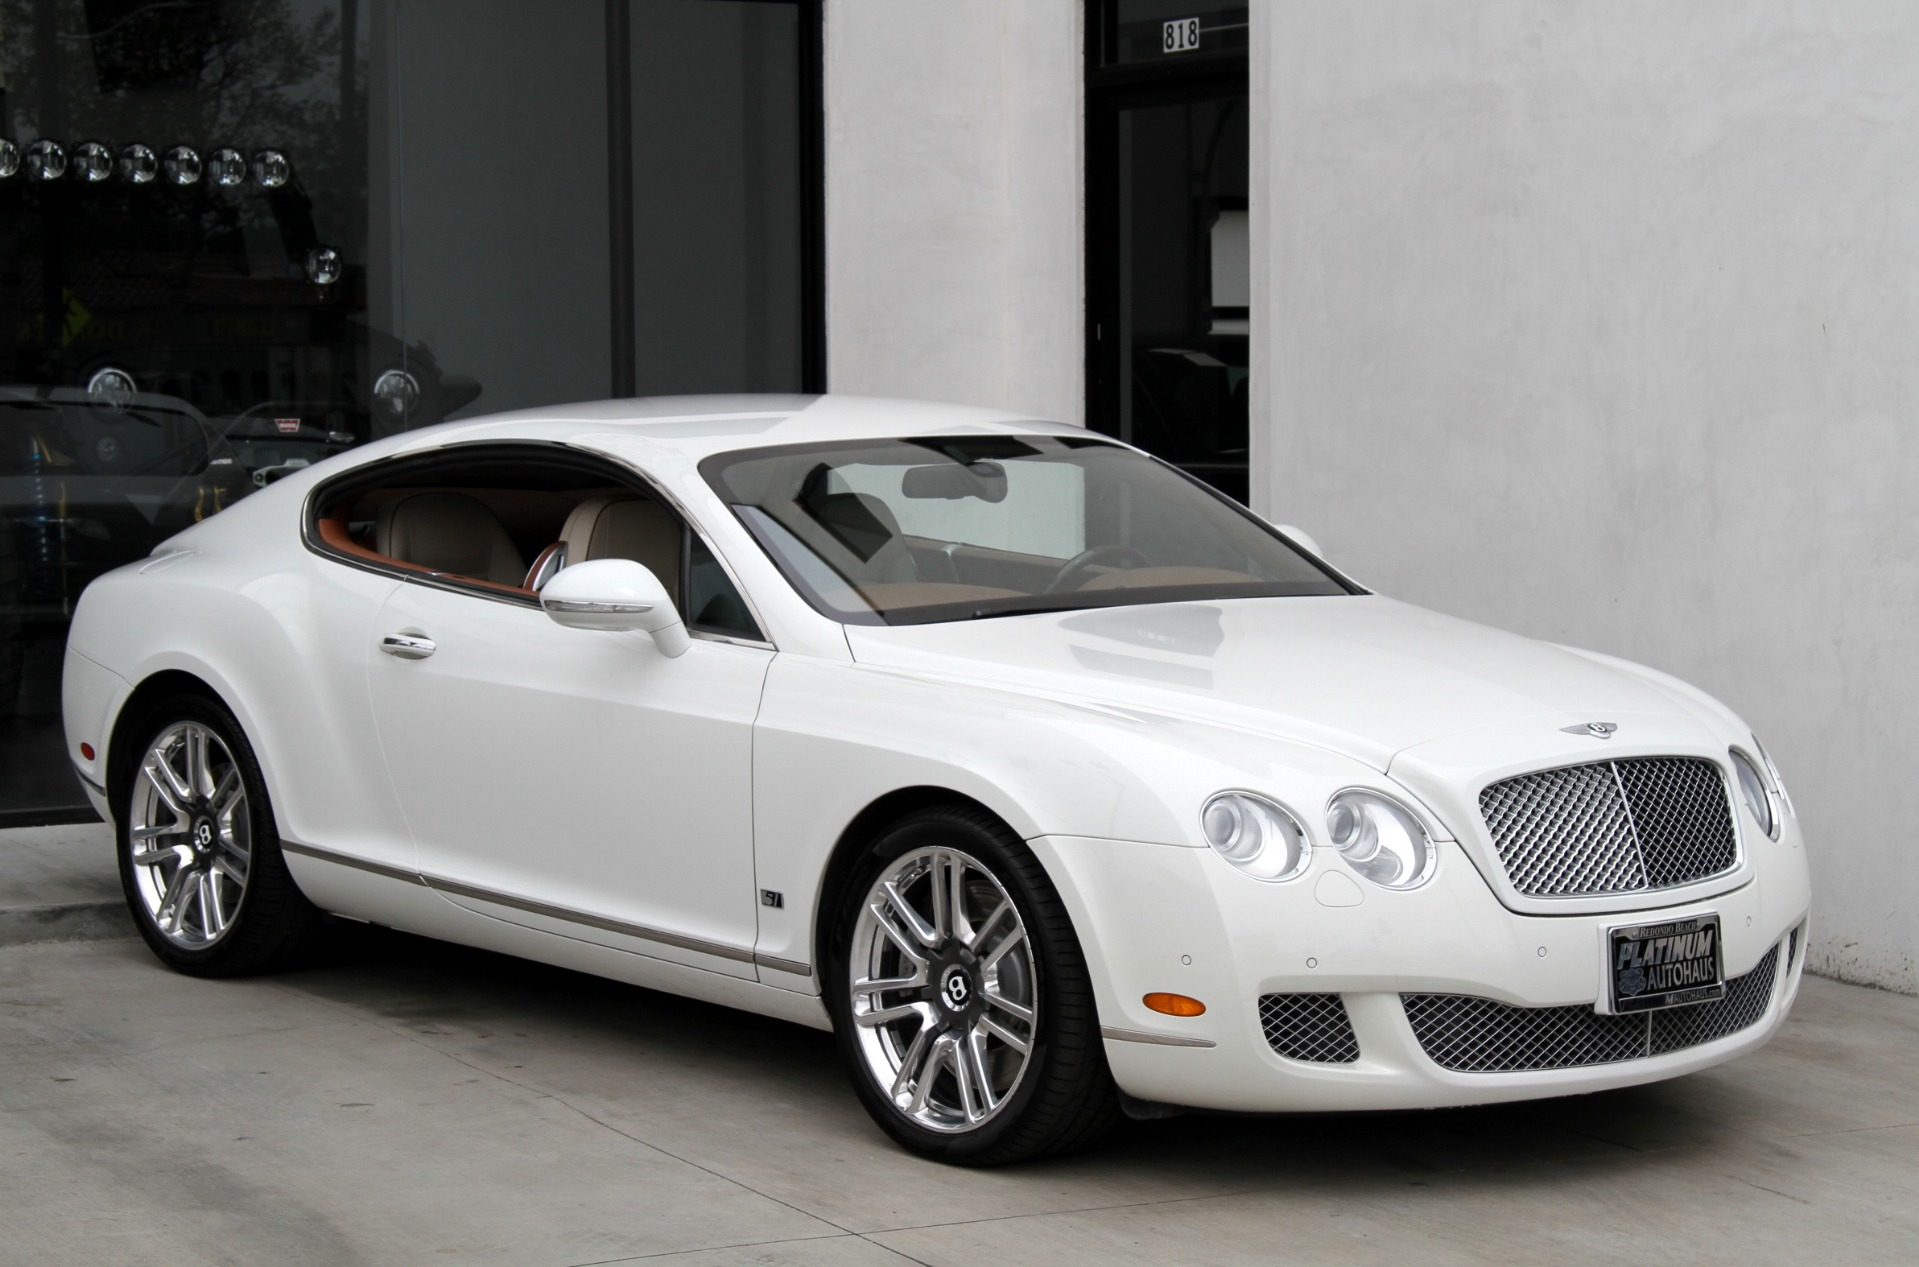 2010 bentley continental gt series 51 edition stock 6177 for sale near redondo beach ca. Black Bedroom Furniture Sets. Home Design Ideas